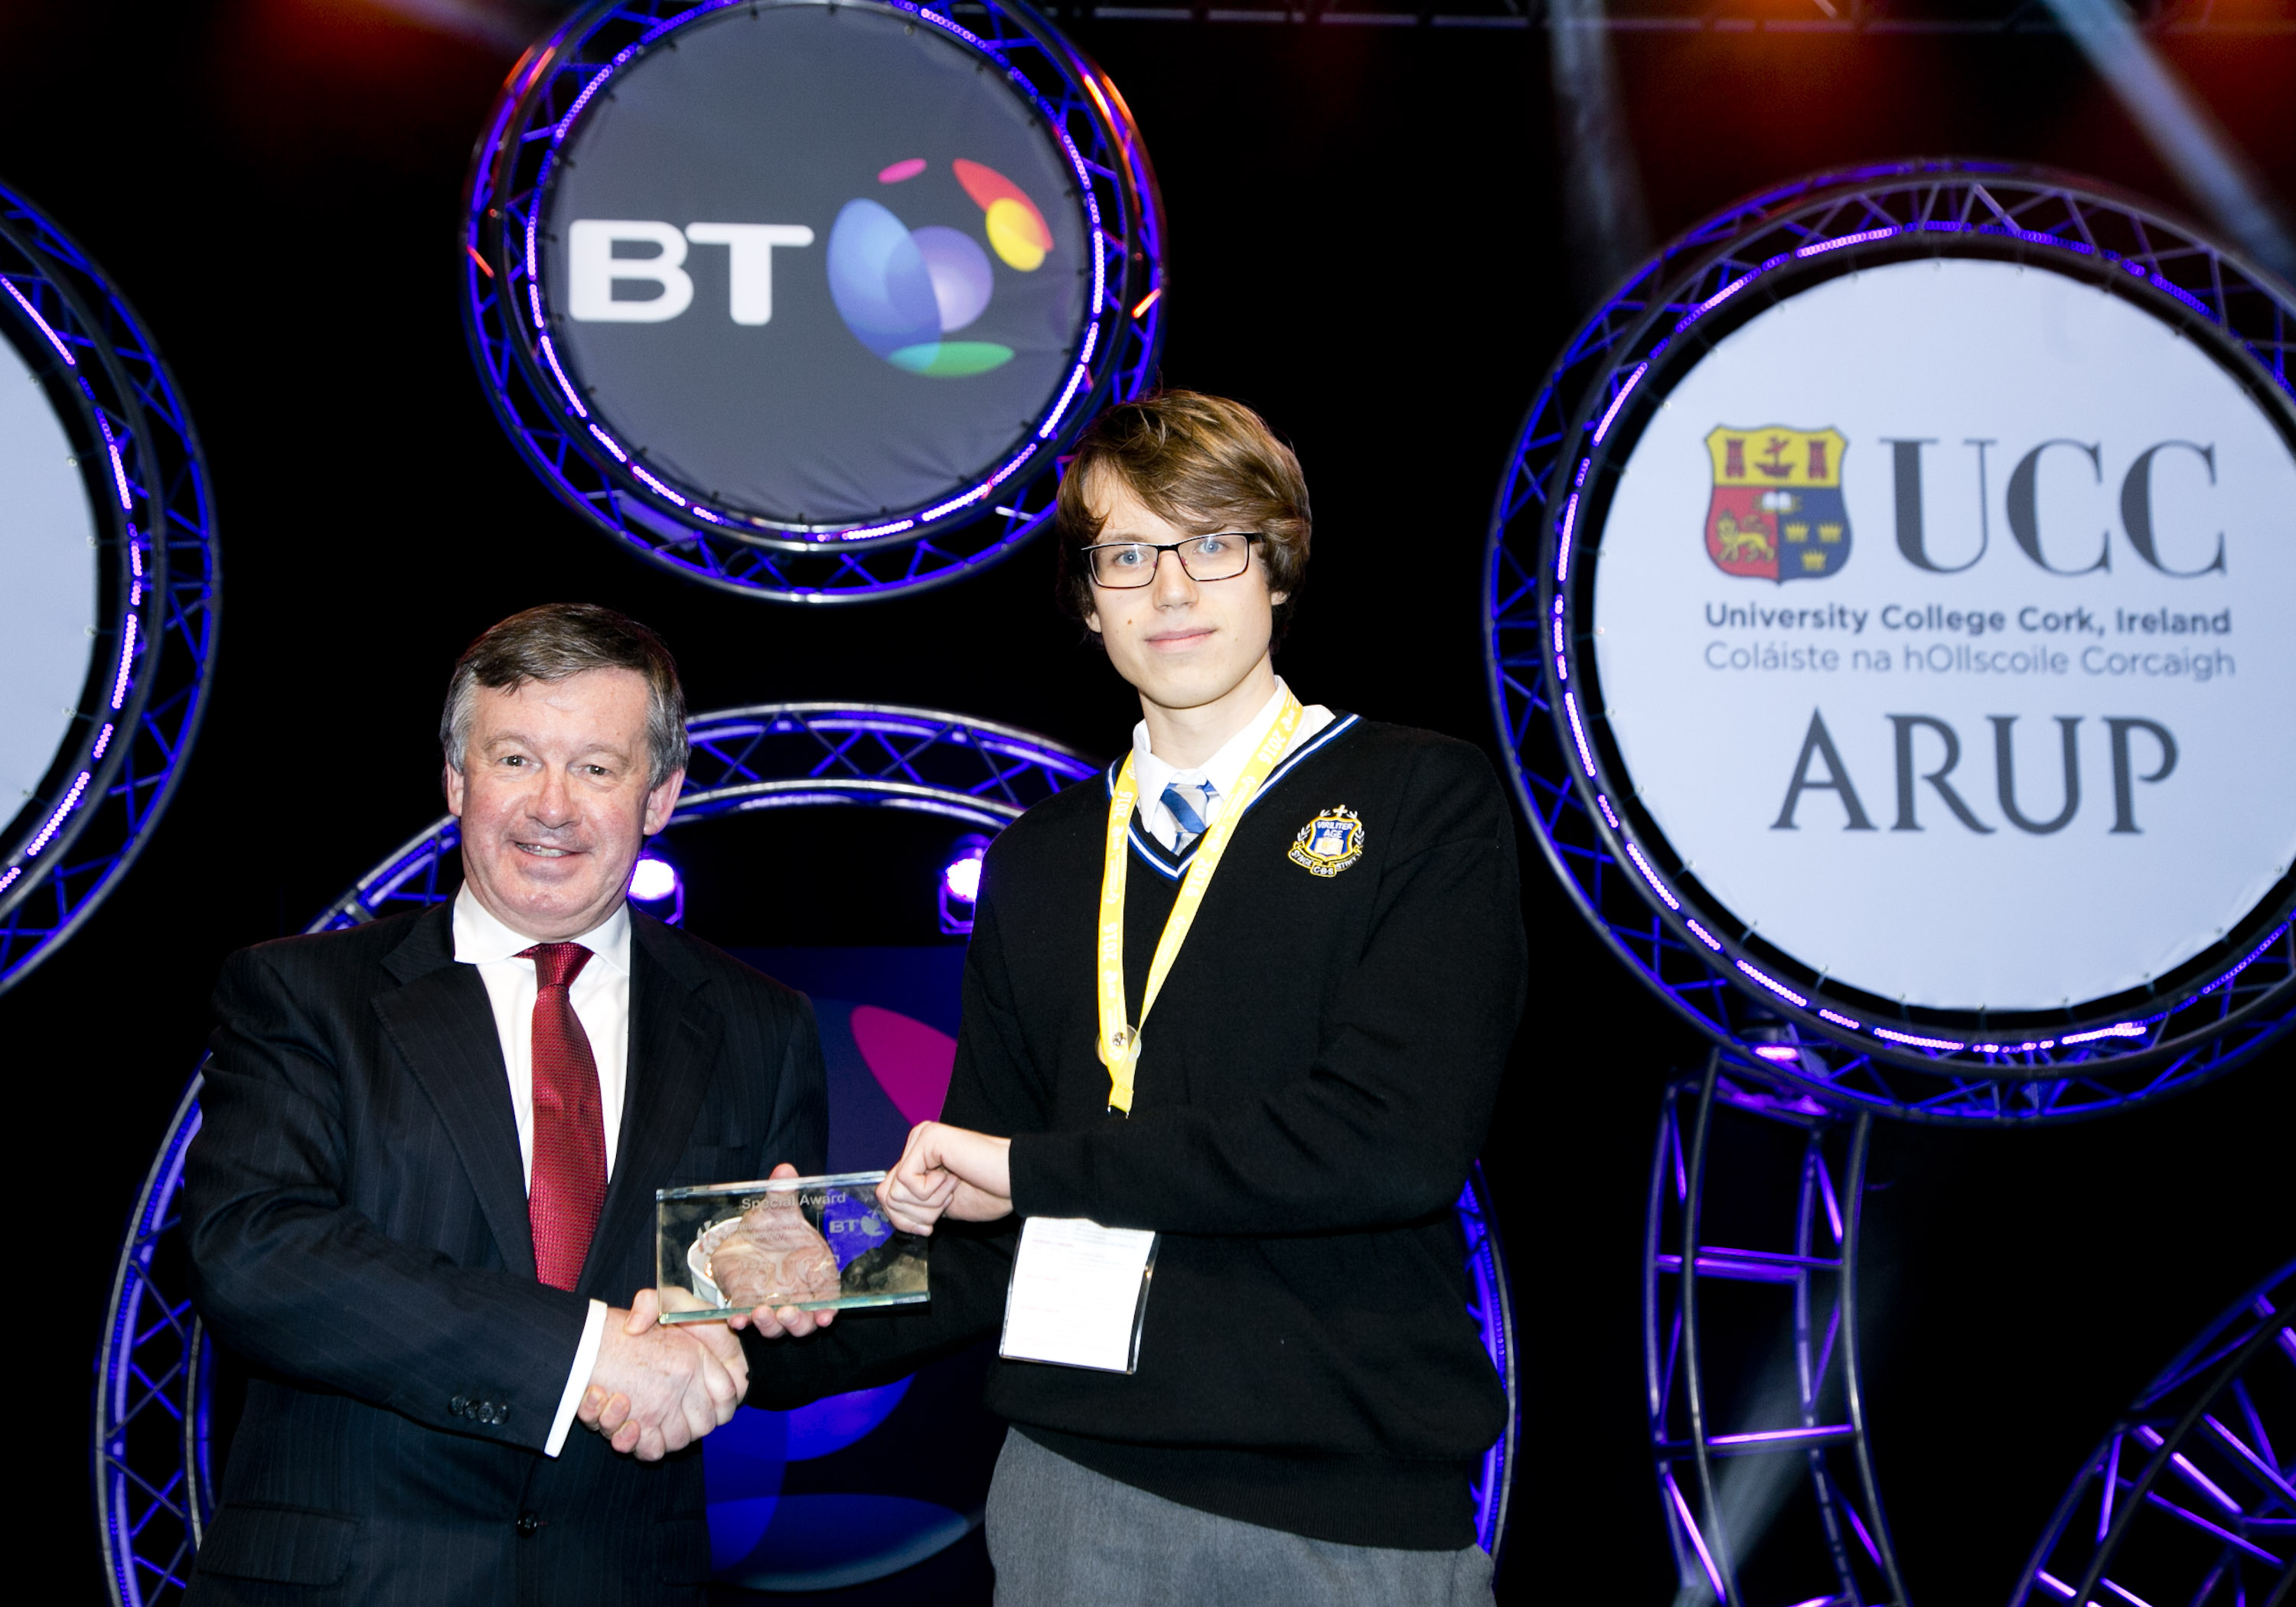 BT Young Scientist and Technology Exhibition 2016, awards evening at the RDS. Prof. Michael Murphy, President UCC who presented  the UCC/ ARUP Award, to Antanas  Murelis from Synge Street, Dublin for his project, 'PricingParison Options Using Monte Carlos Simulation'. Picture Colm Mahady / Fennells